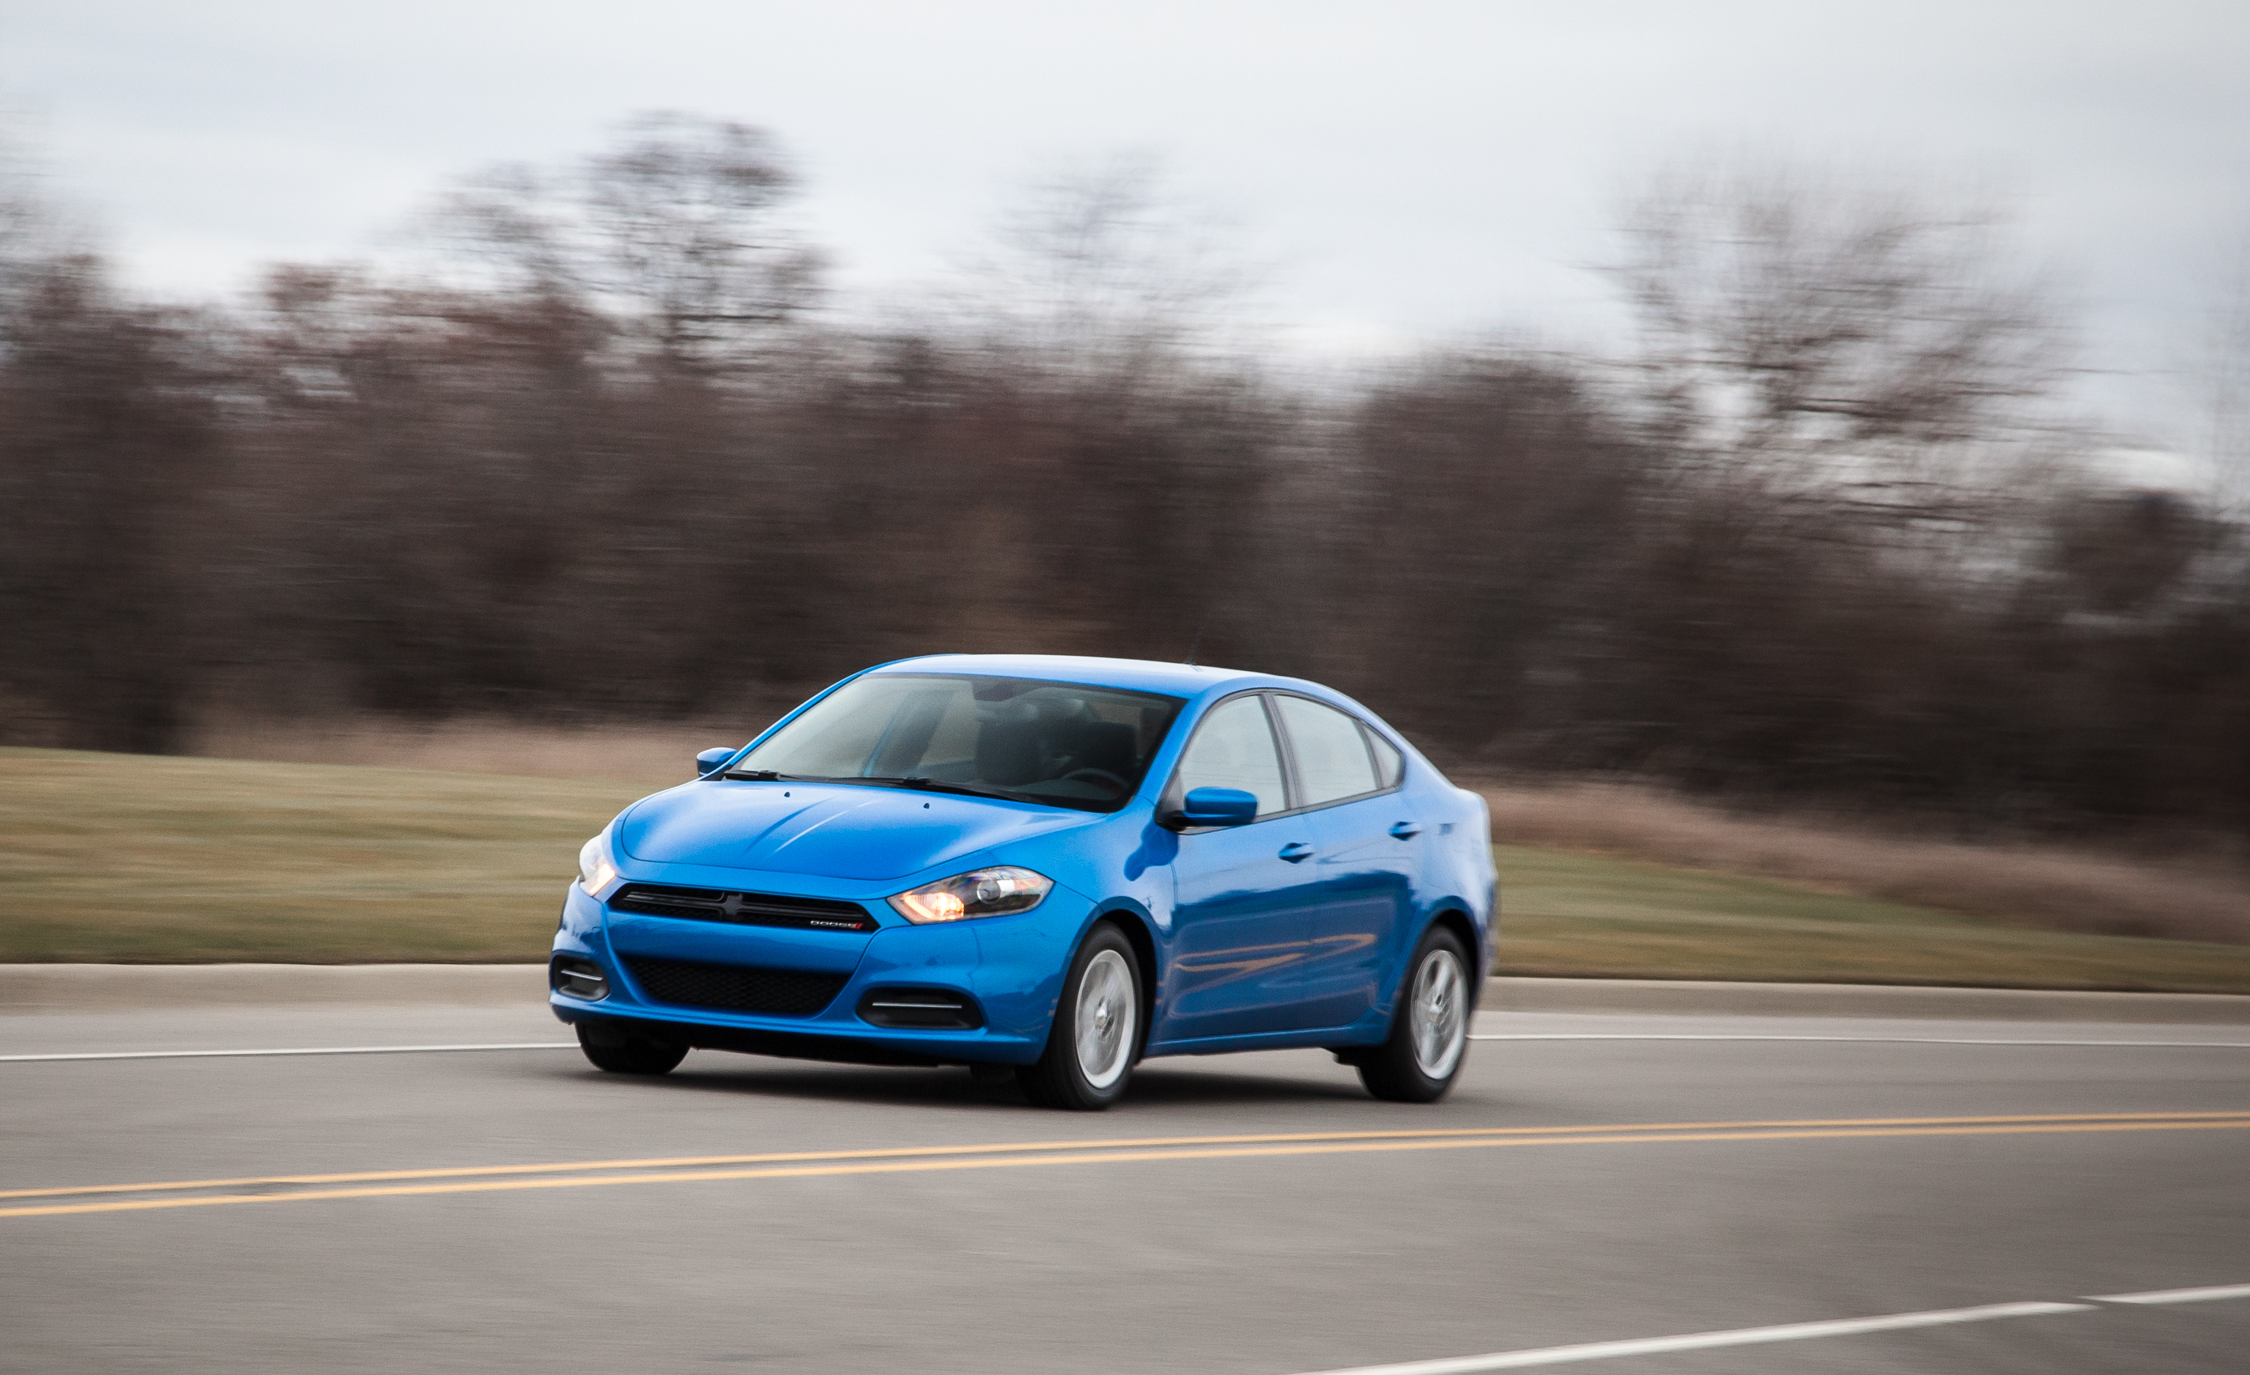 2015 Dodge Dart SXT (View 3 of 14)